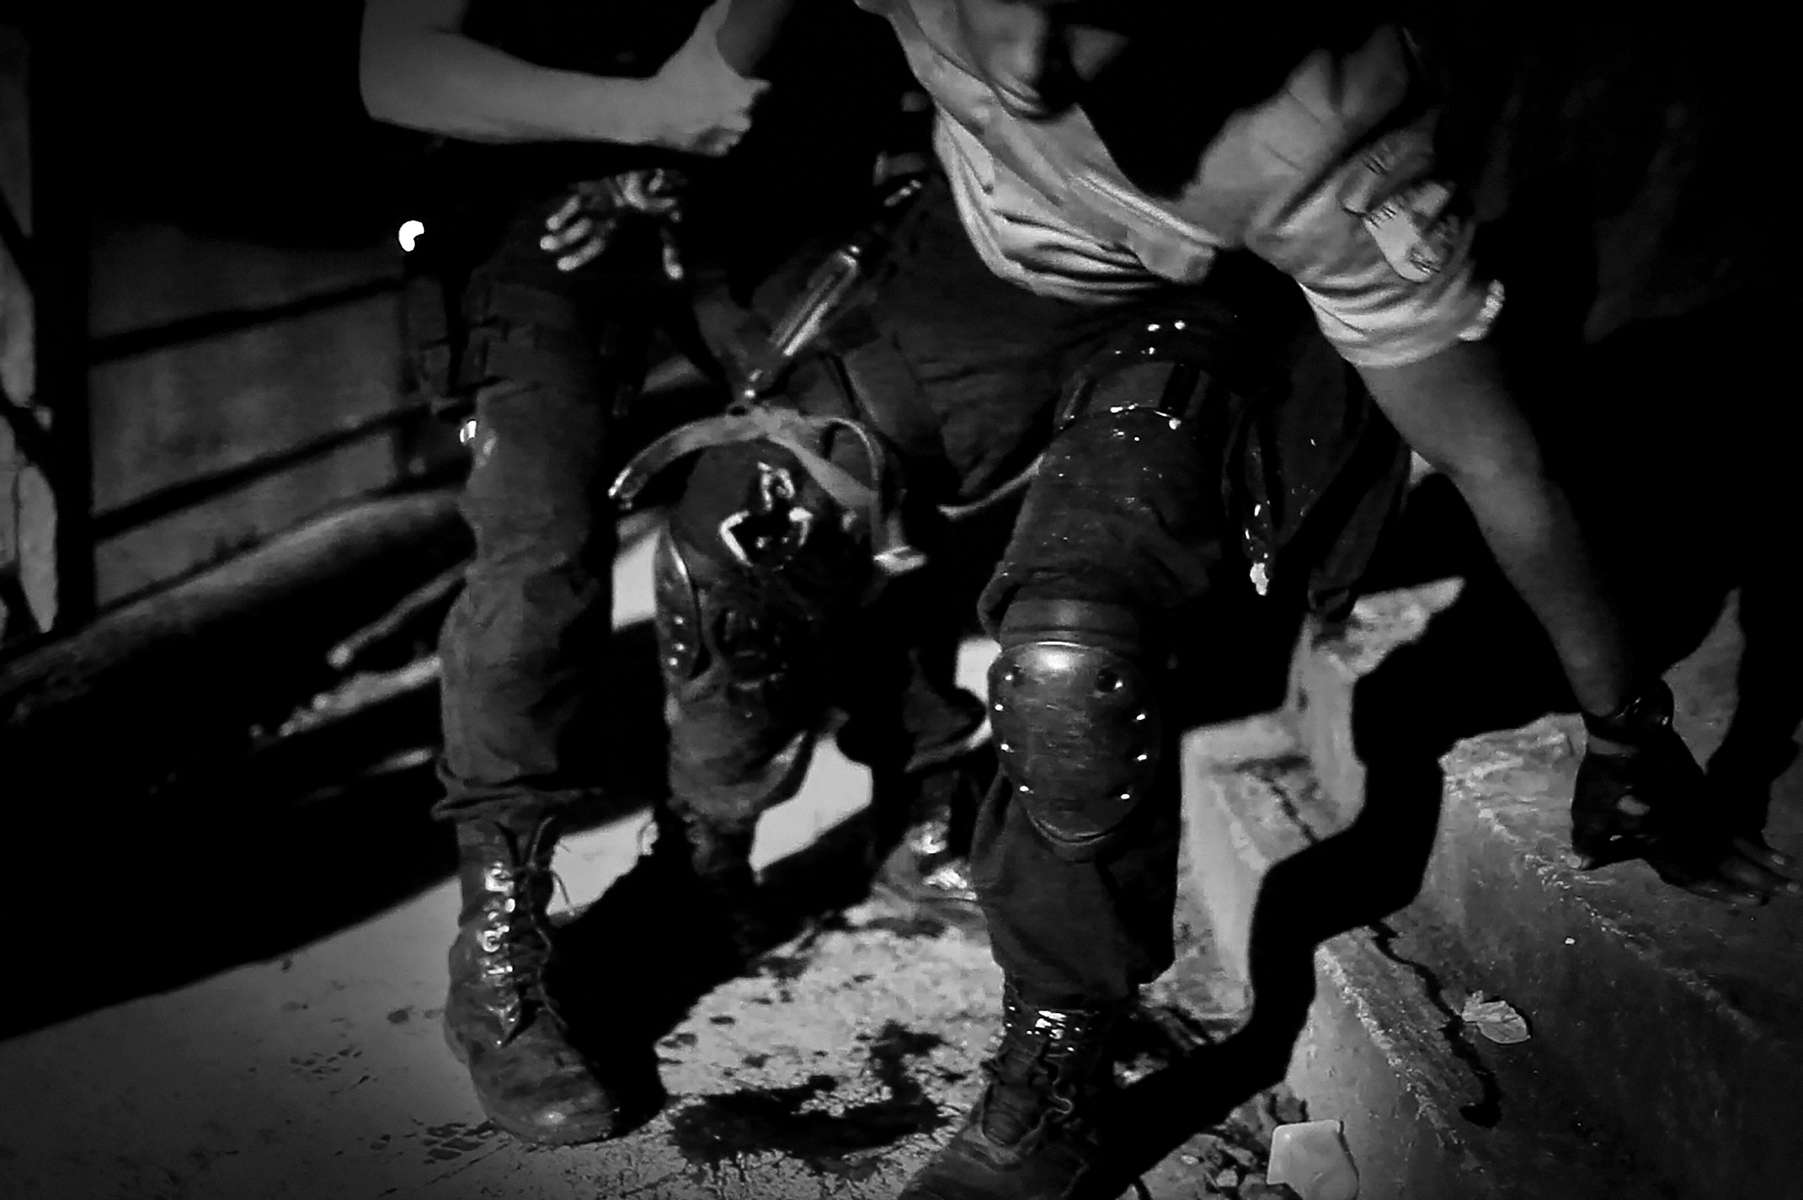 A UPP Military Policemen officer had been shot by gangs while on patrol in Sao Carlos, Rio de Janeiro, Brazil, May 5, 2012. Initiated in 2008, the UPP, short for Unidade de Polícia Pacificadora (in English, Pacifier Police Unit or Police Pacification Unit), is a new system of community policing in Rio de Janeiro's favelas once run by drug traffickers. While many believe that UPPs have helped quell violence by opening the doors of the favelas to public services such as legal electricity supply, garbage collection, education, public works and social assistance program, others see the pacification program as a temporary cover-up to security problems in Rio de Janeiro.